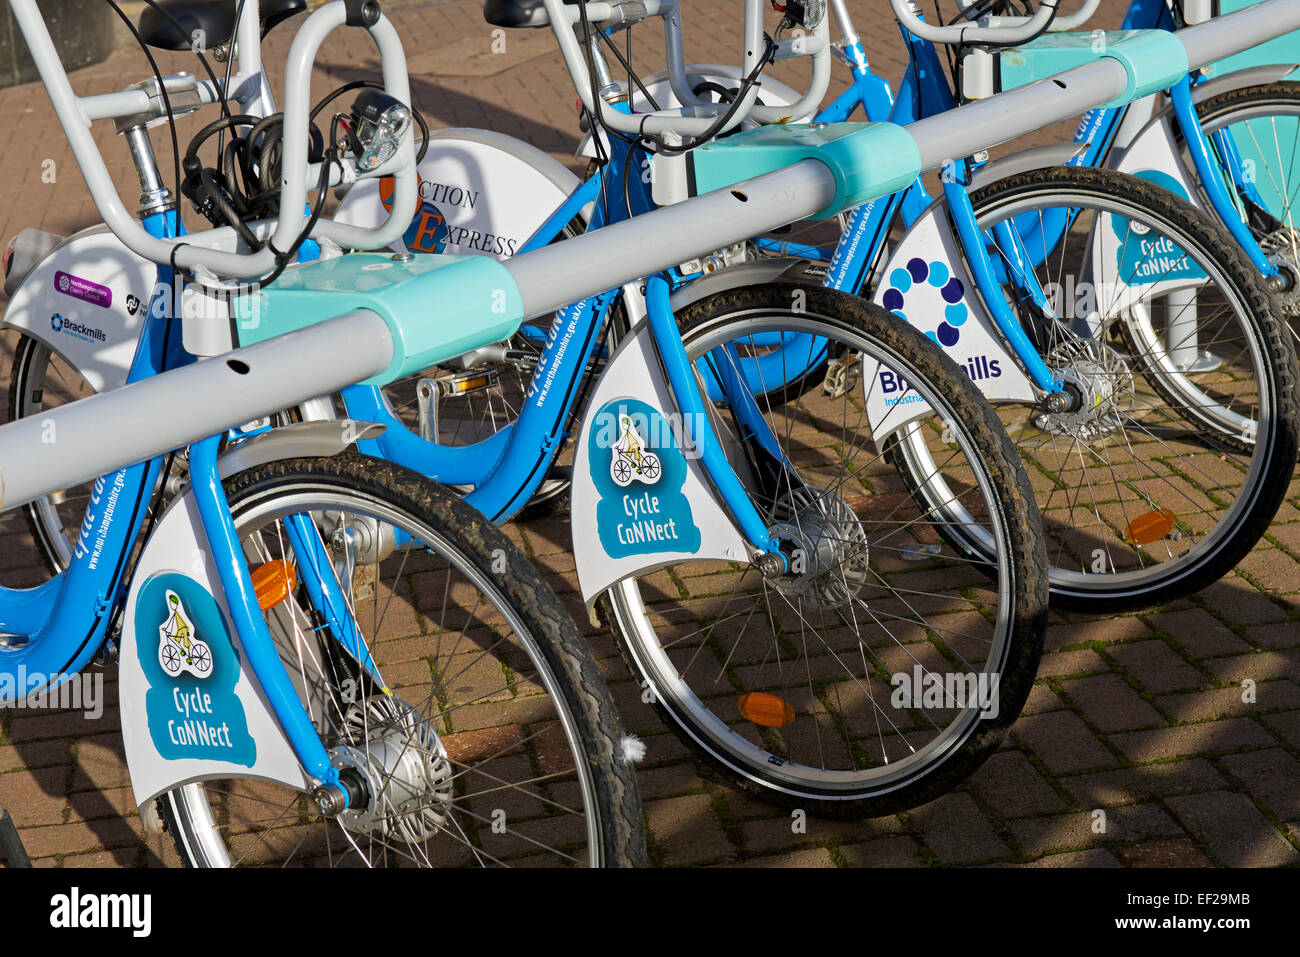 Bikes for hire in the Cycle Connect scheme, Northampton, Northamptonshire, England UK - Stock Image